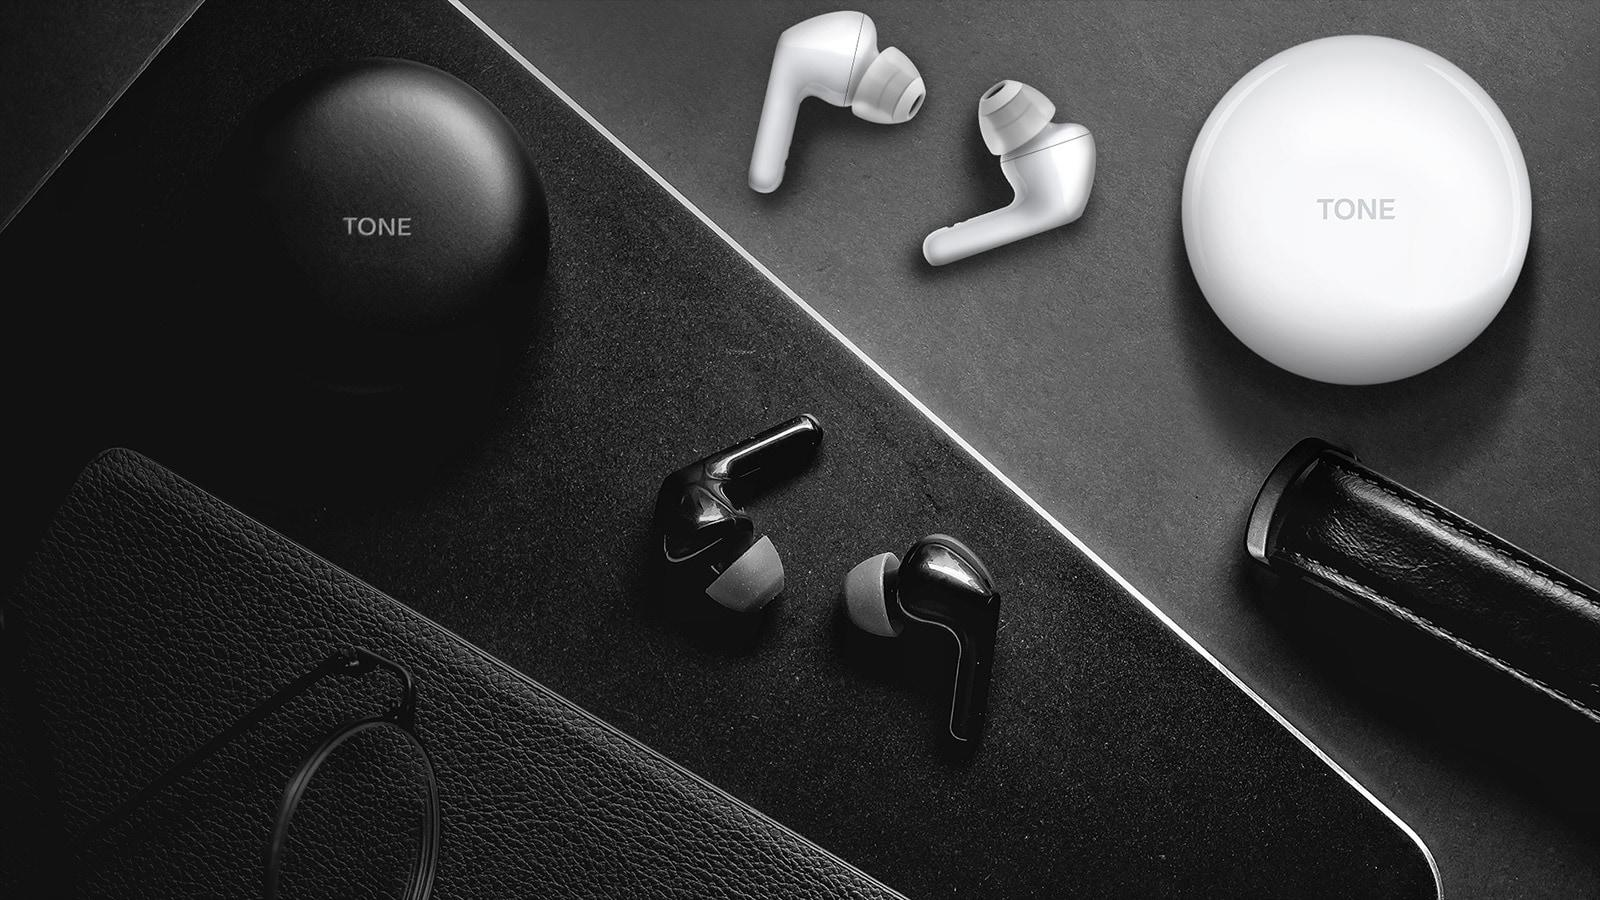 LG TONE Free HBS-FN6 True Wireless Earbuds in Black or White